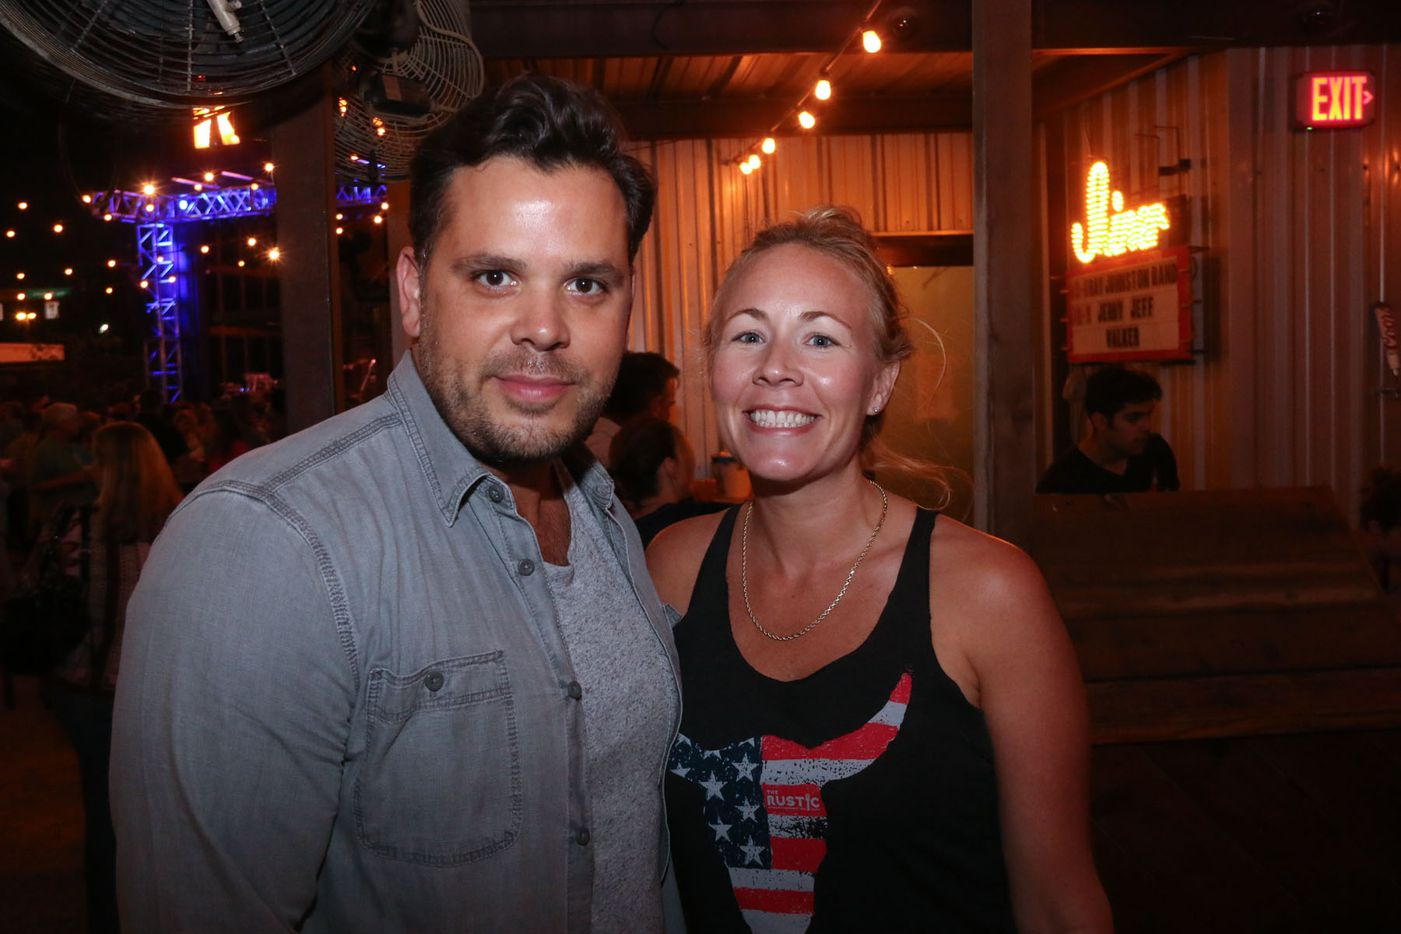 Owner Kyle Noonan and Kara Cook at The Rustic in Uptown on October 9, 2015.